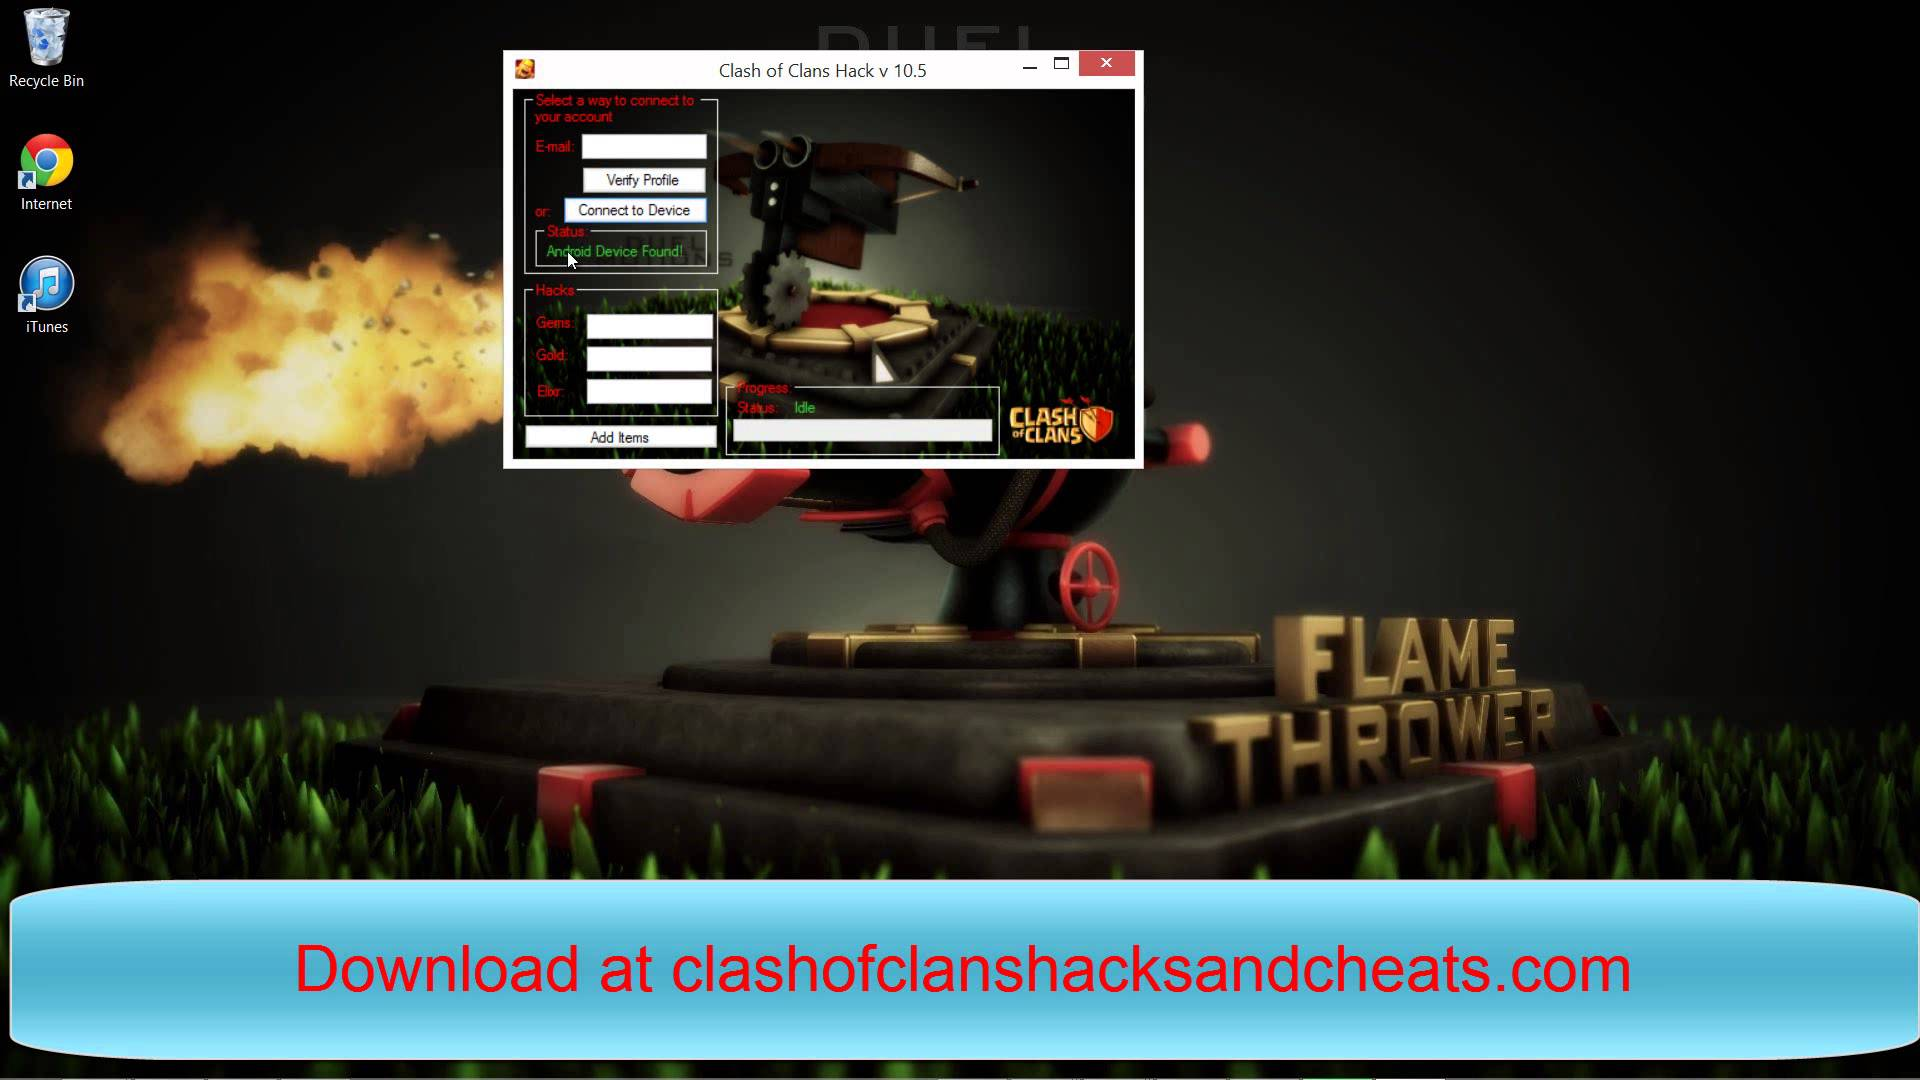 Clash of Clans Hack Ultimate Gem hack Tool Fuck you 2014 nigger